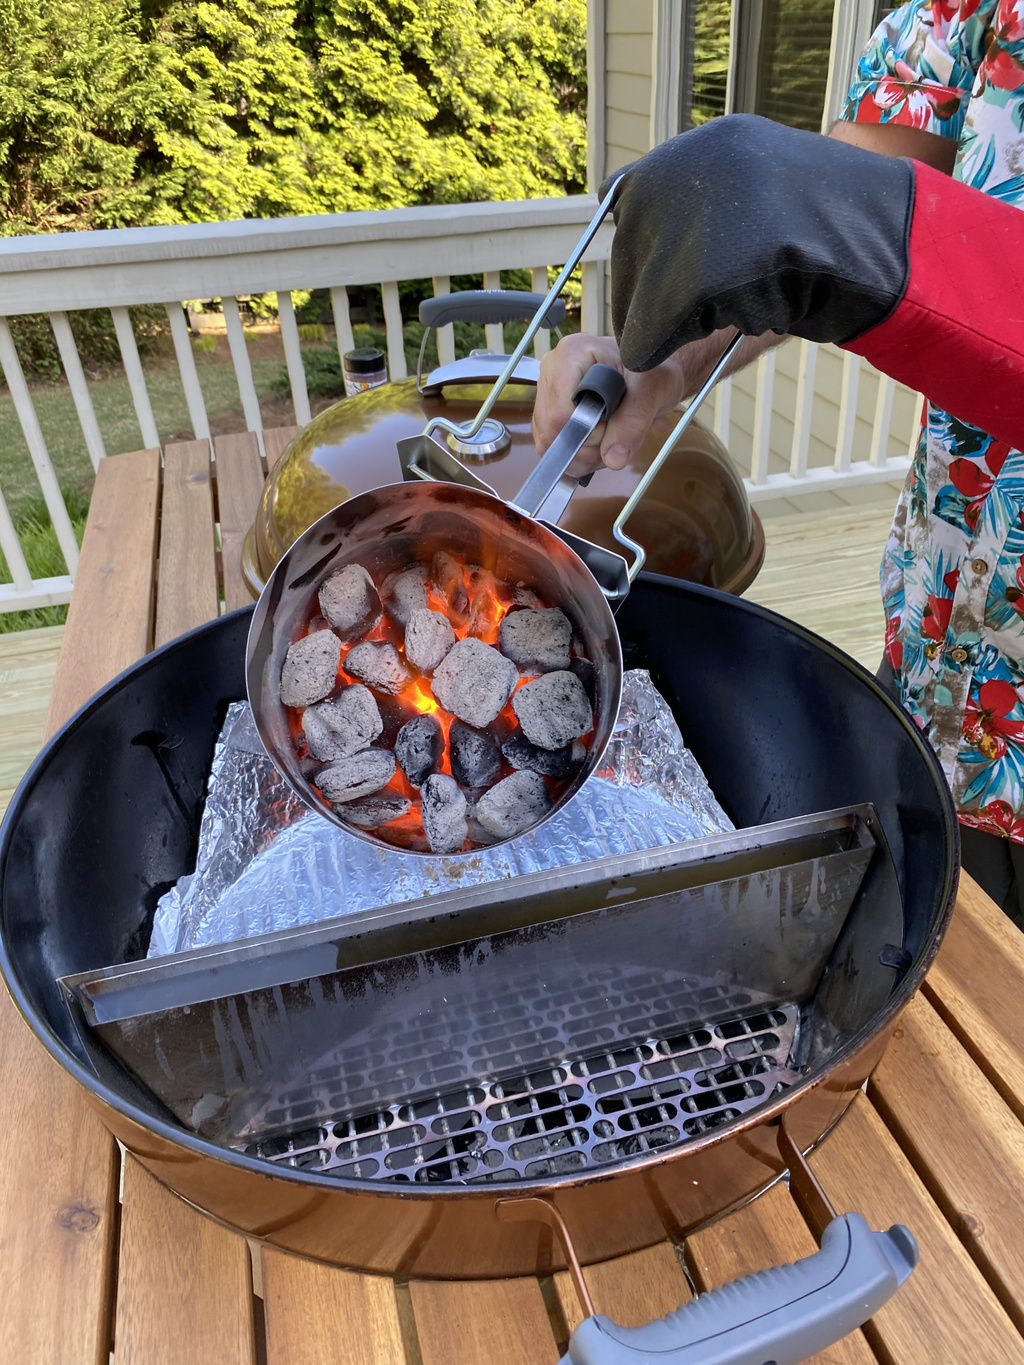 man pouring charcoal on grill